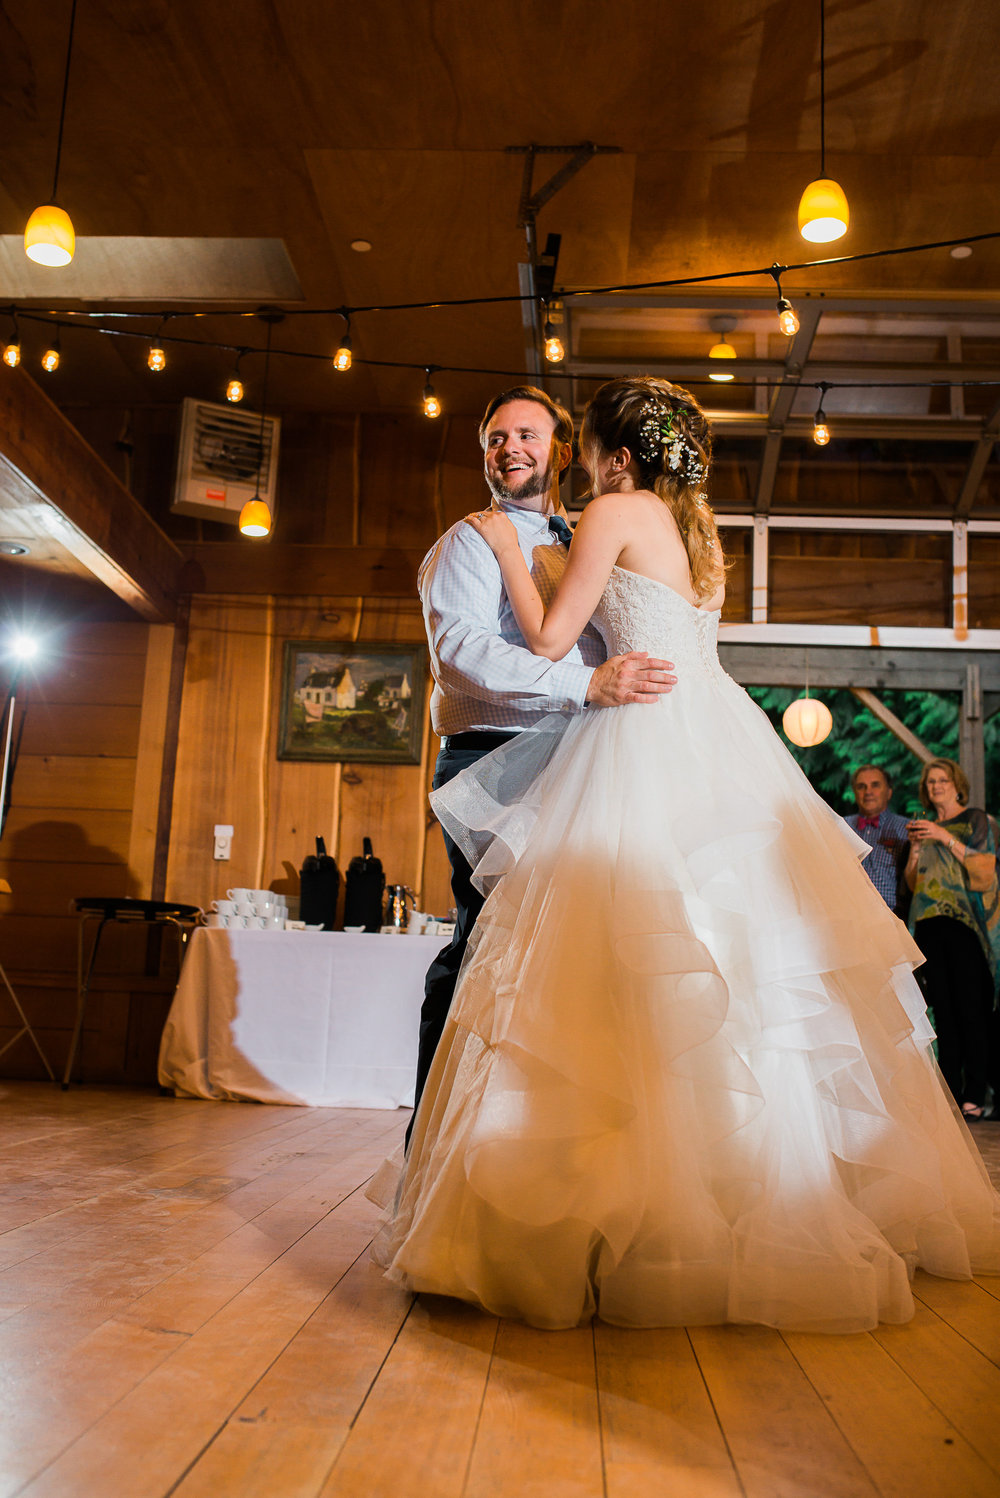 couples first dance in barn at Unique PNW wedding venue - Treehouse Point